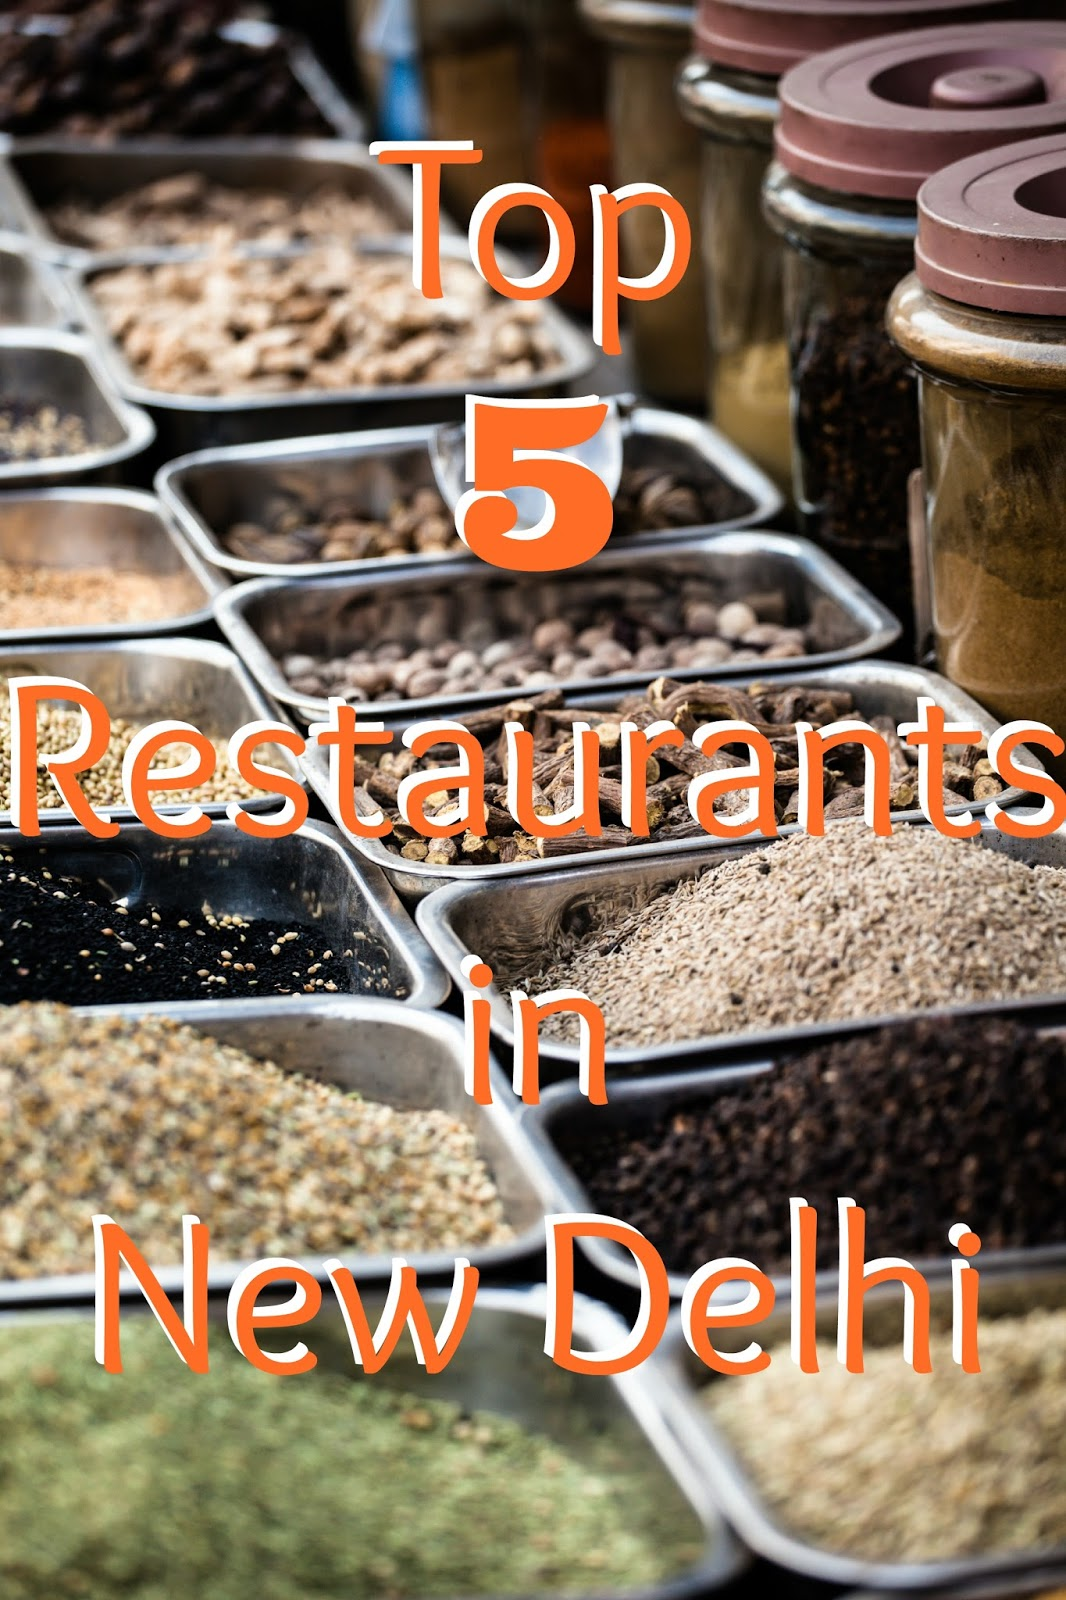 Love food? Check out the 5 places you shouldn't pass up when you visit New Delhi! #travel